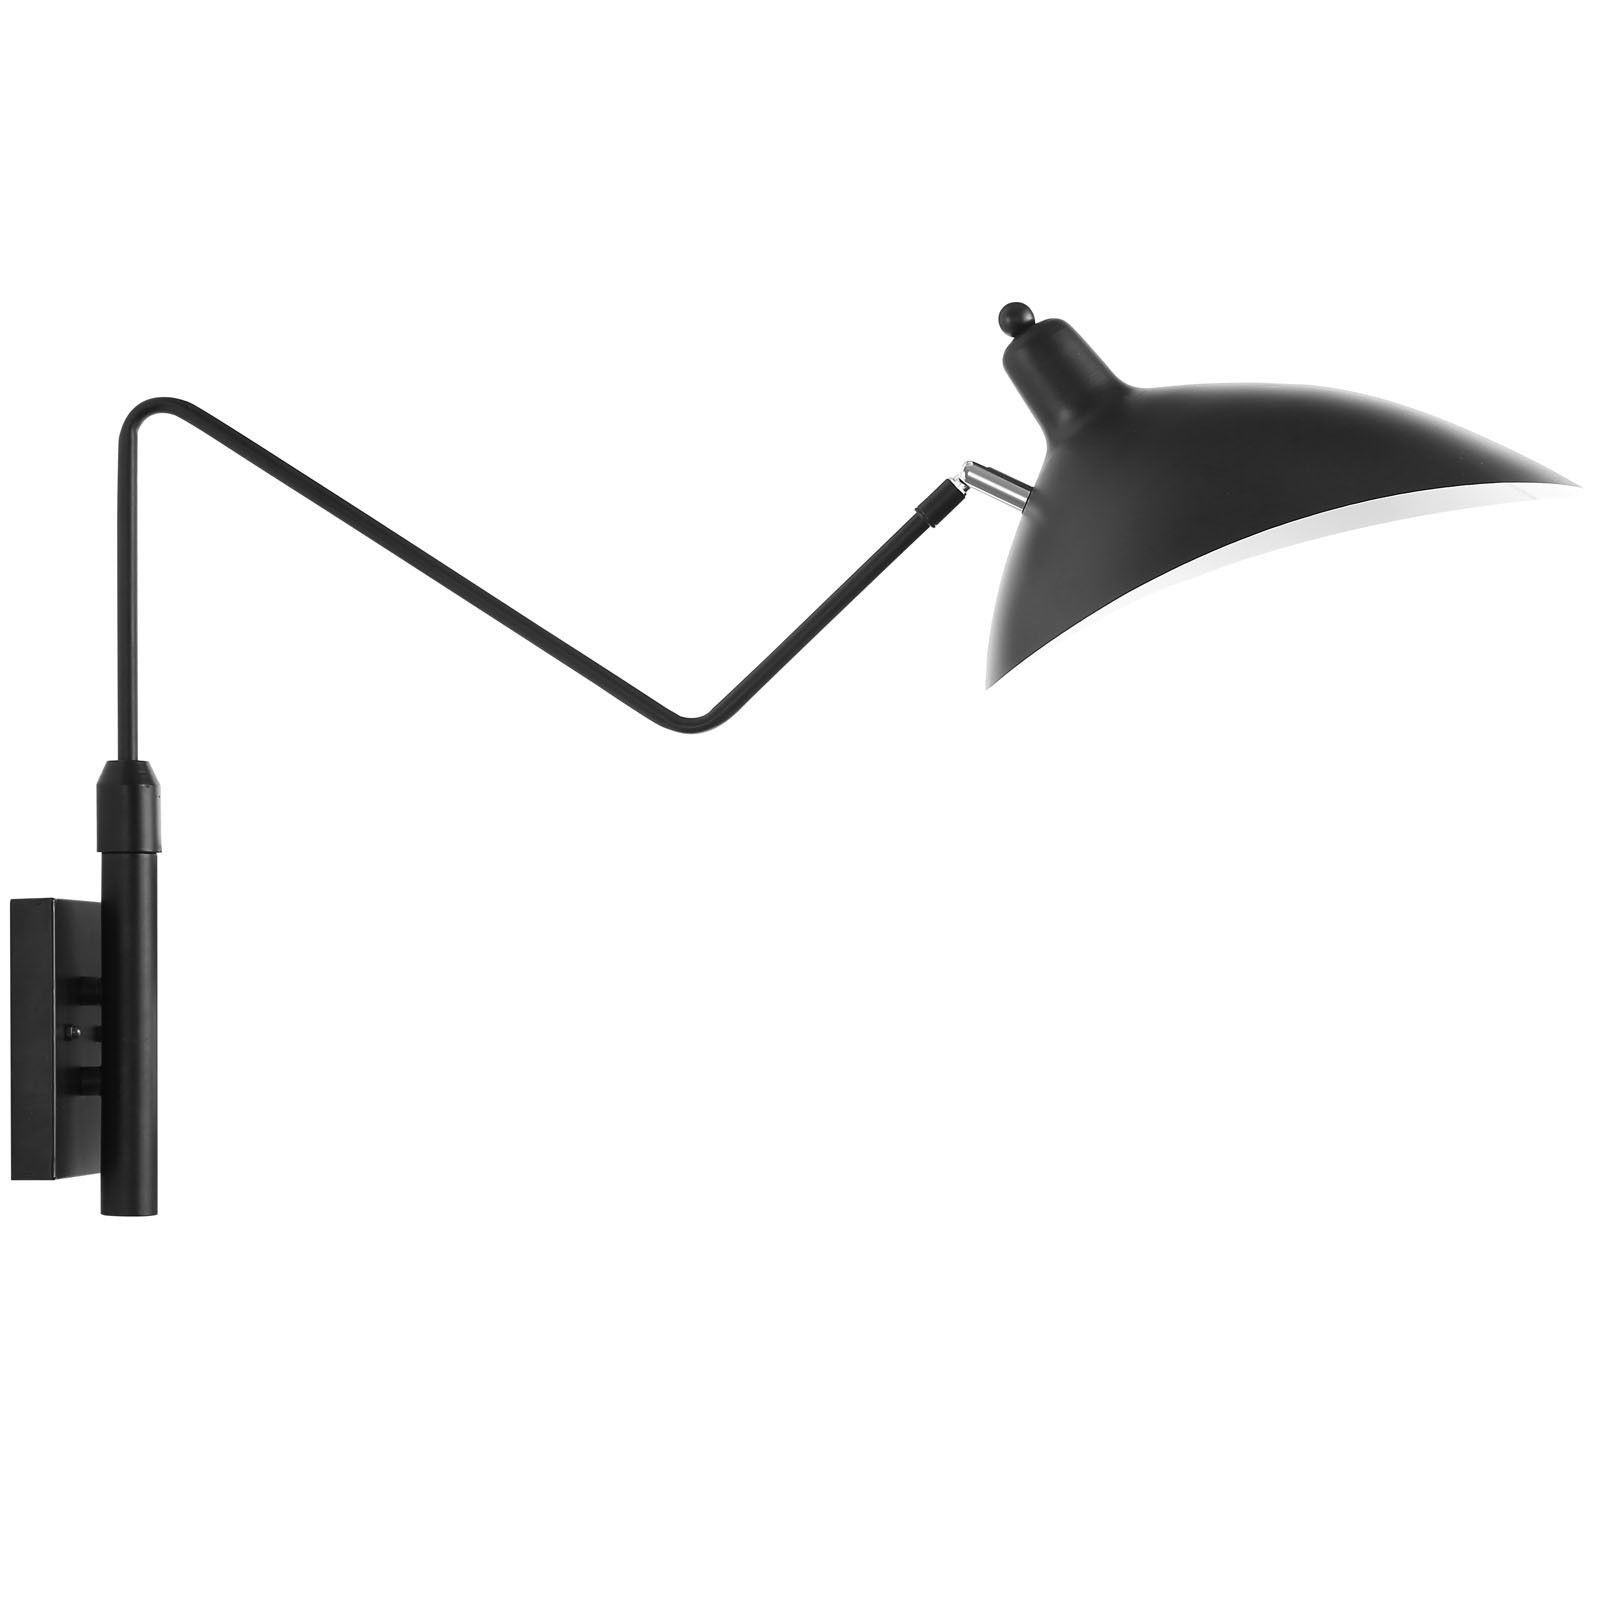 Serge Mouille Style Wall Lamp Sconce Mouille Lampe Murale Et Eclairage Mural